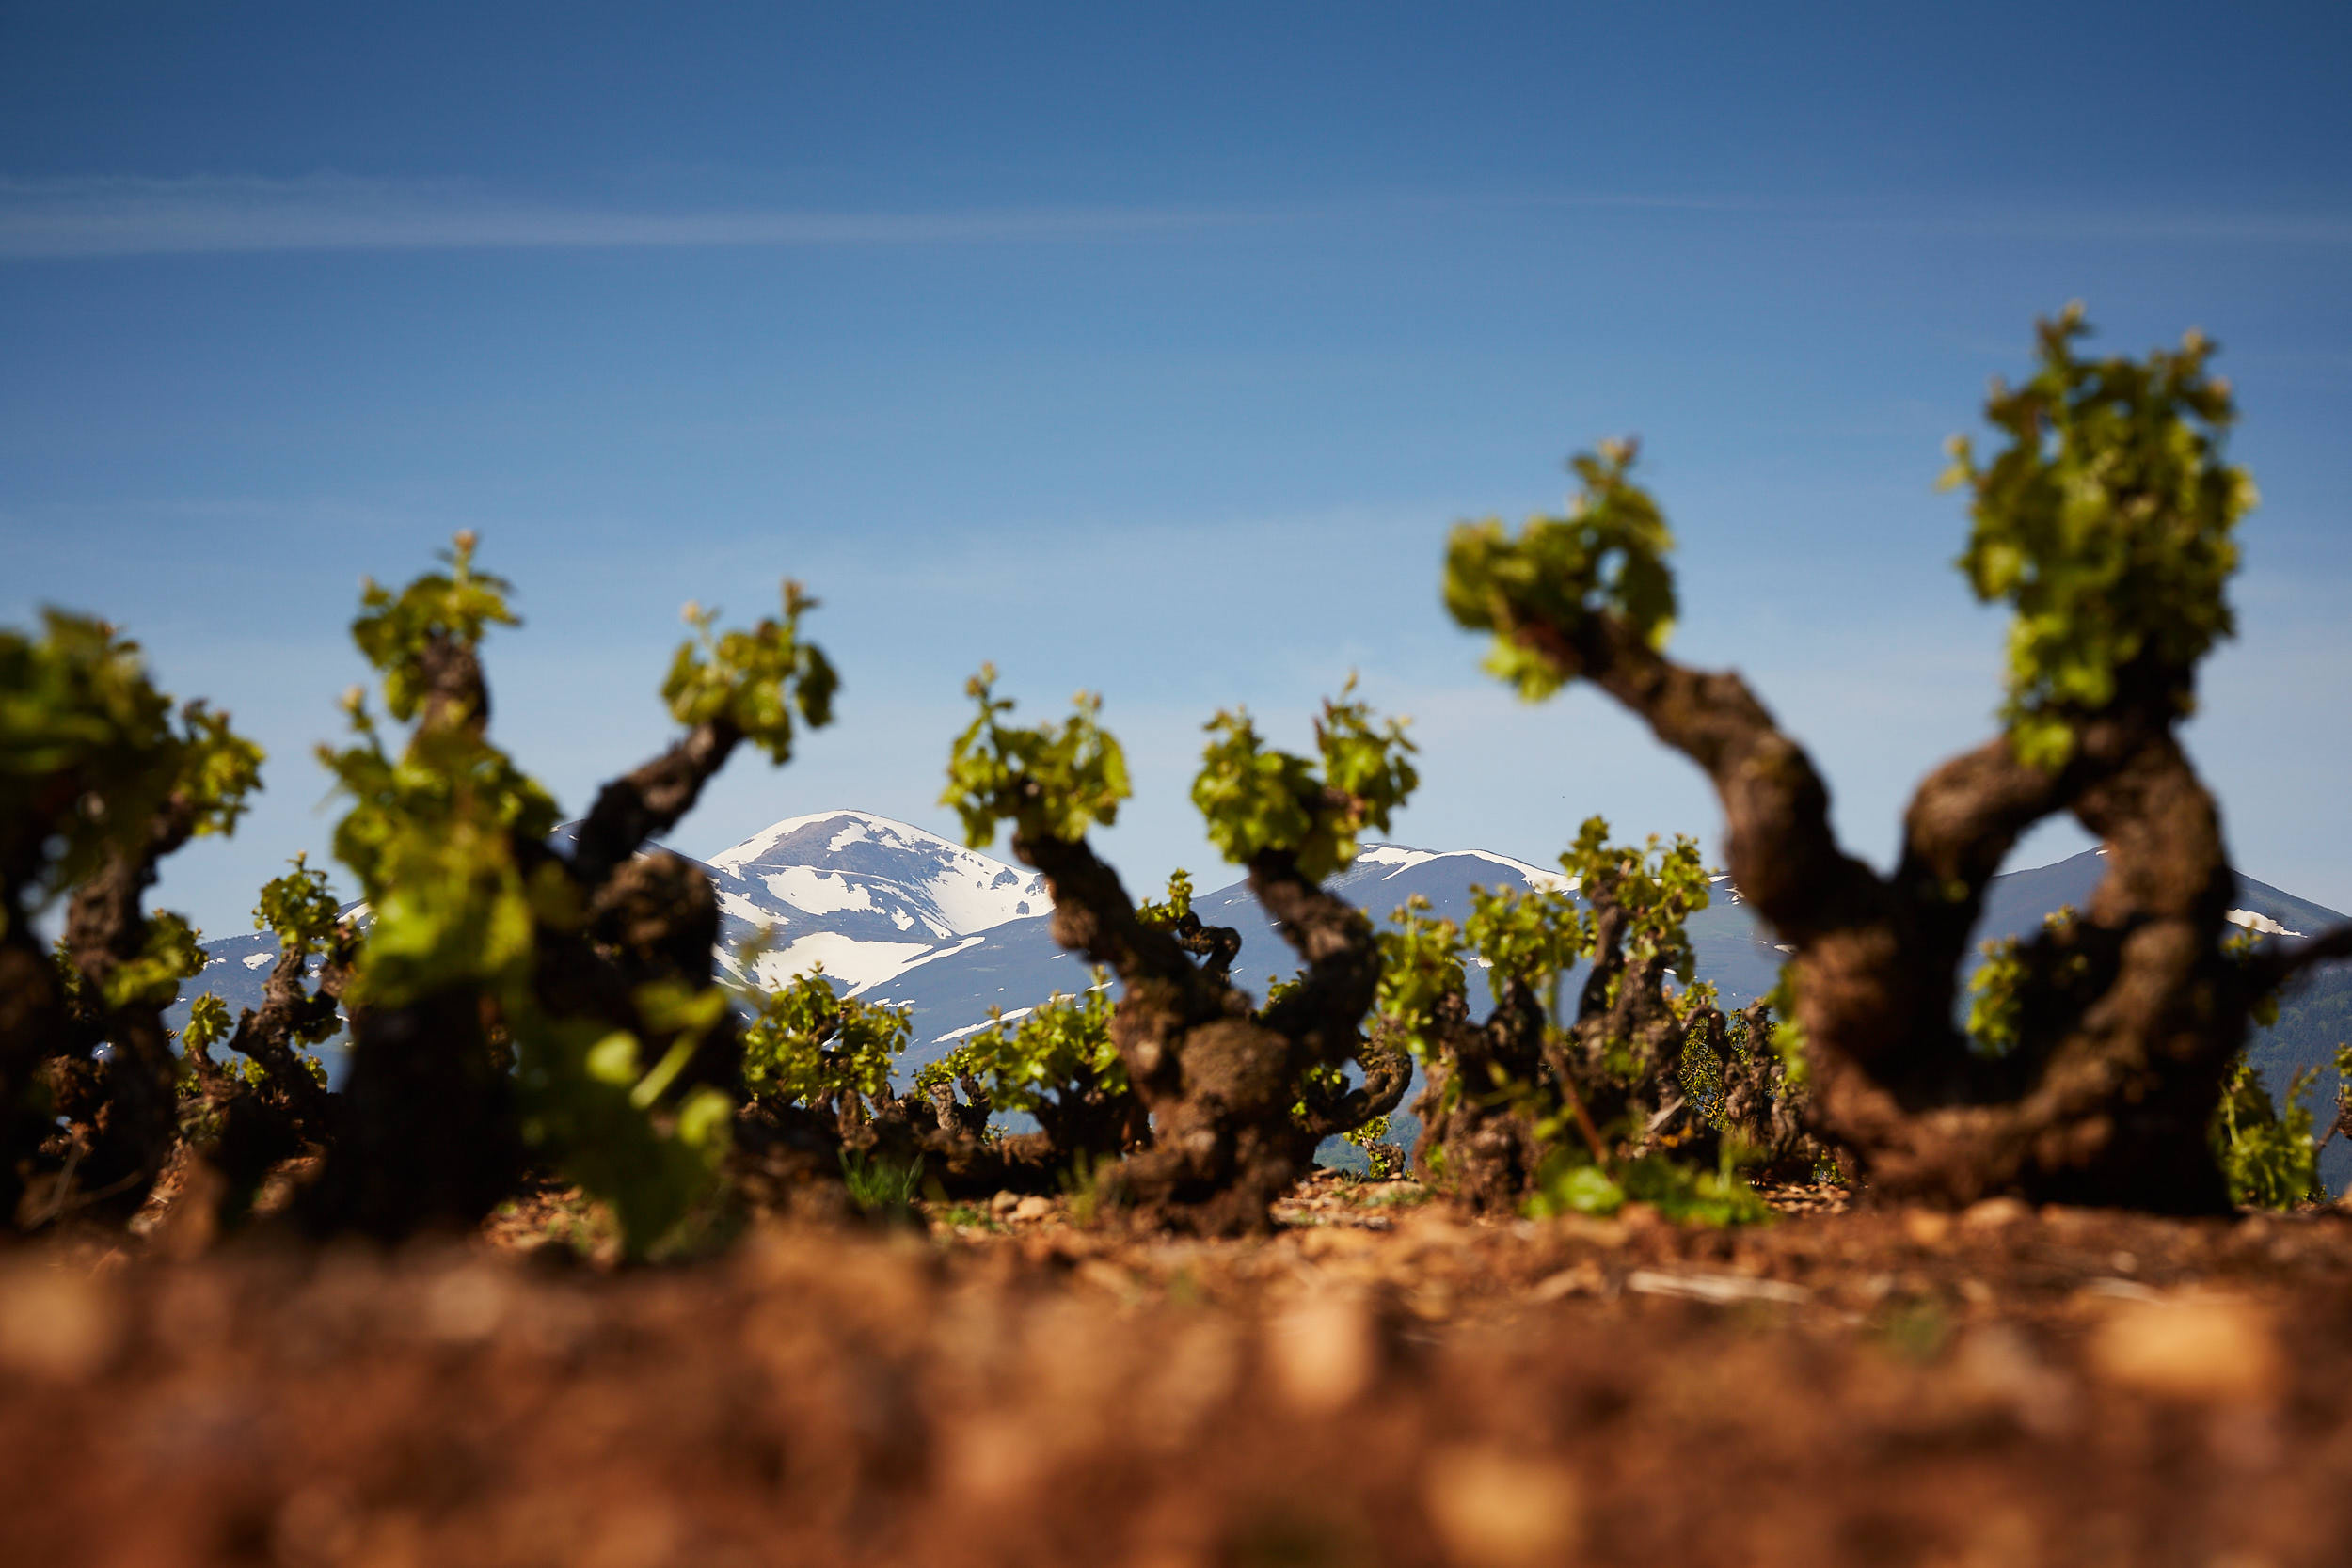 1805Wine_Rioja_Spain_Corporate_Photographer_James_Sturcke_0001.jpg